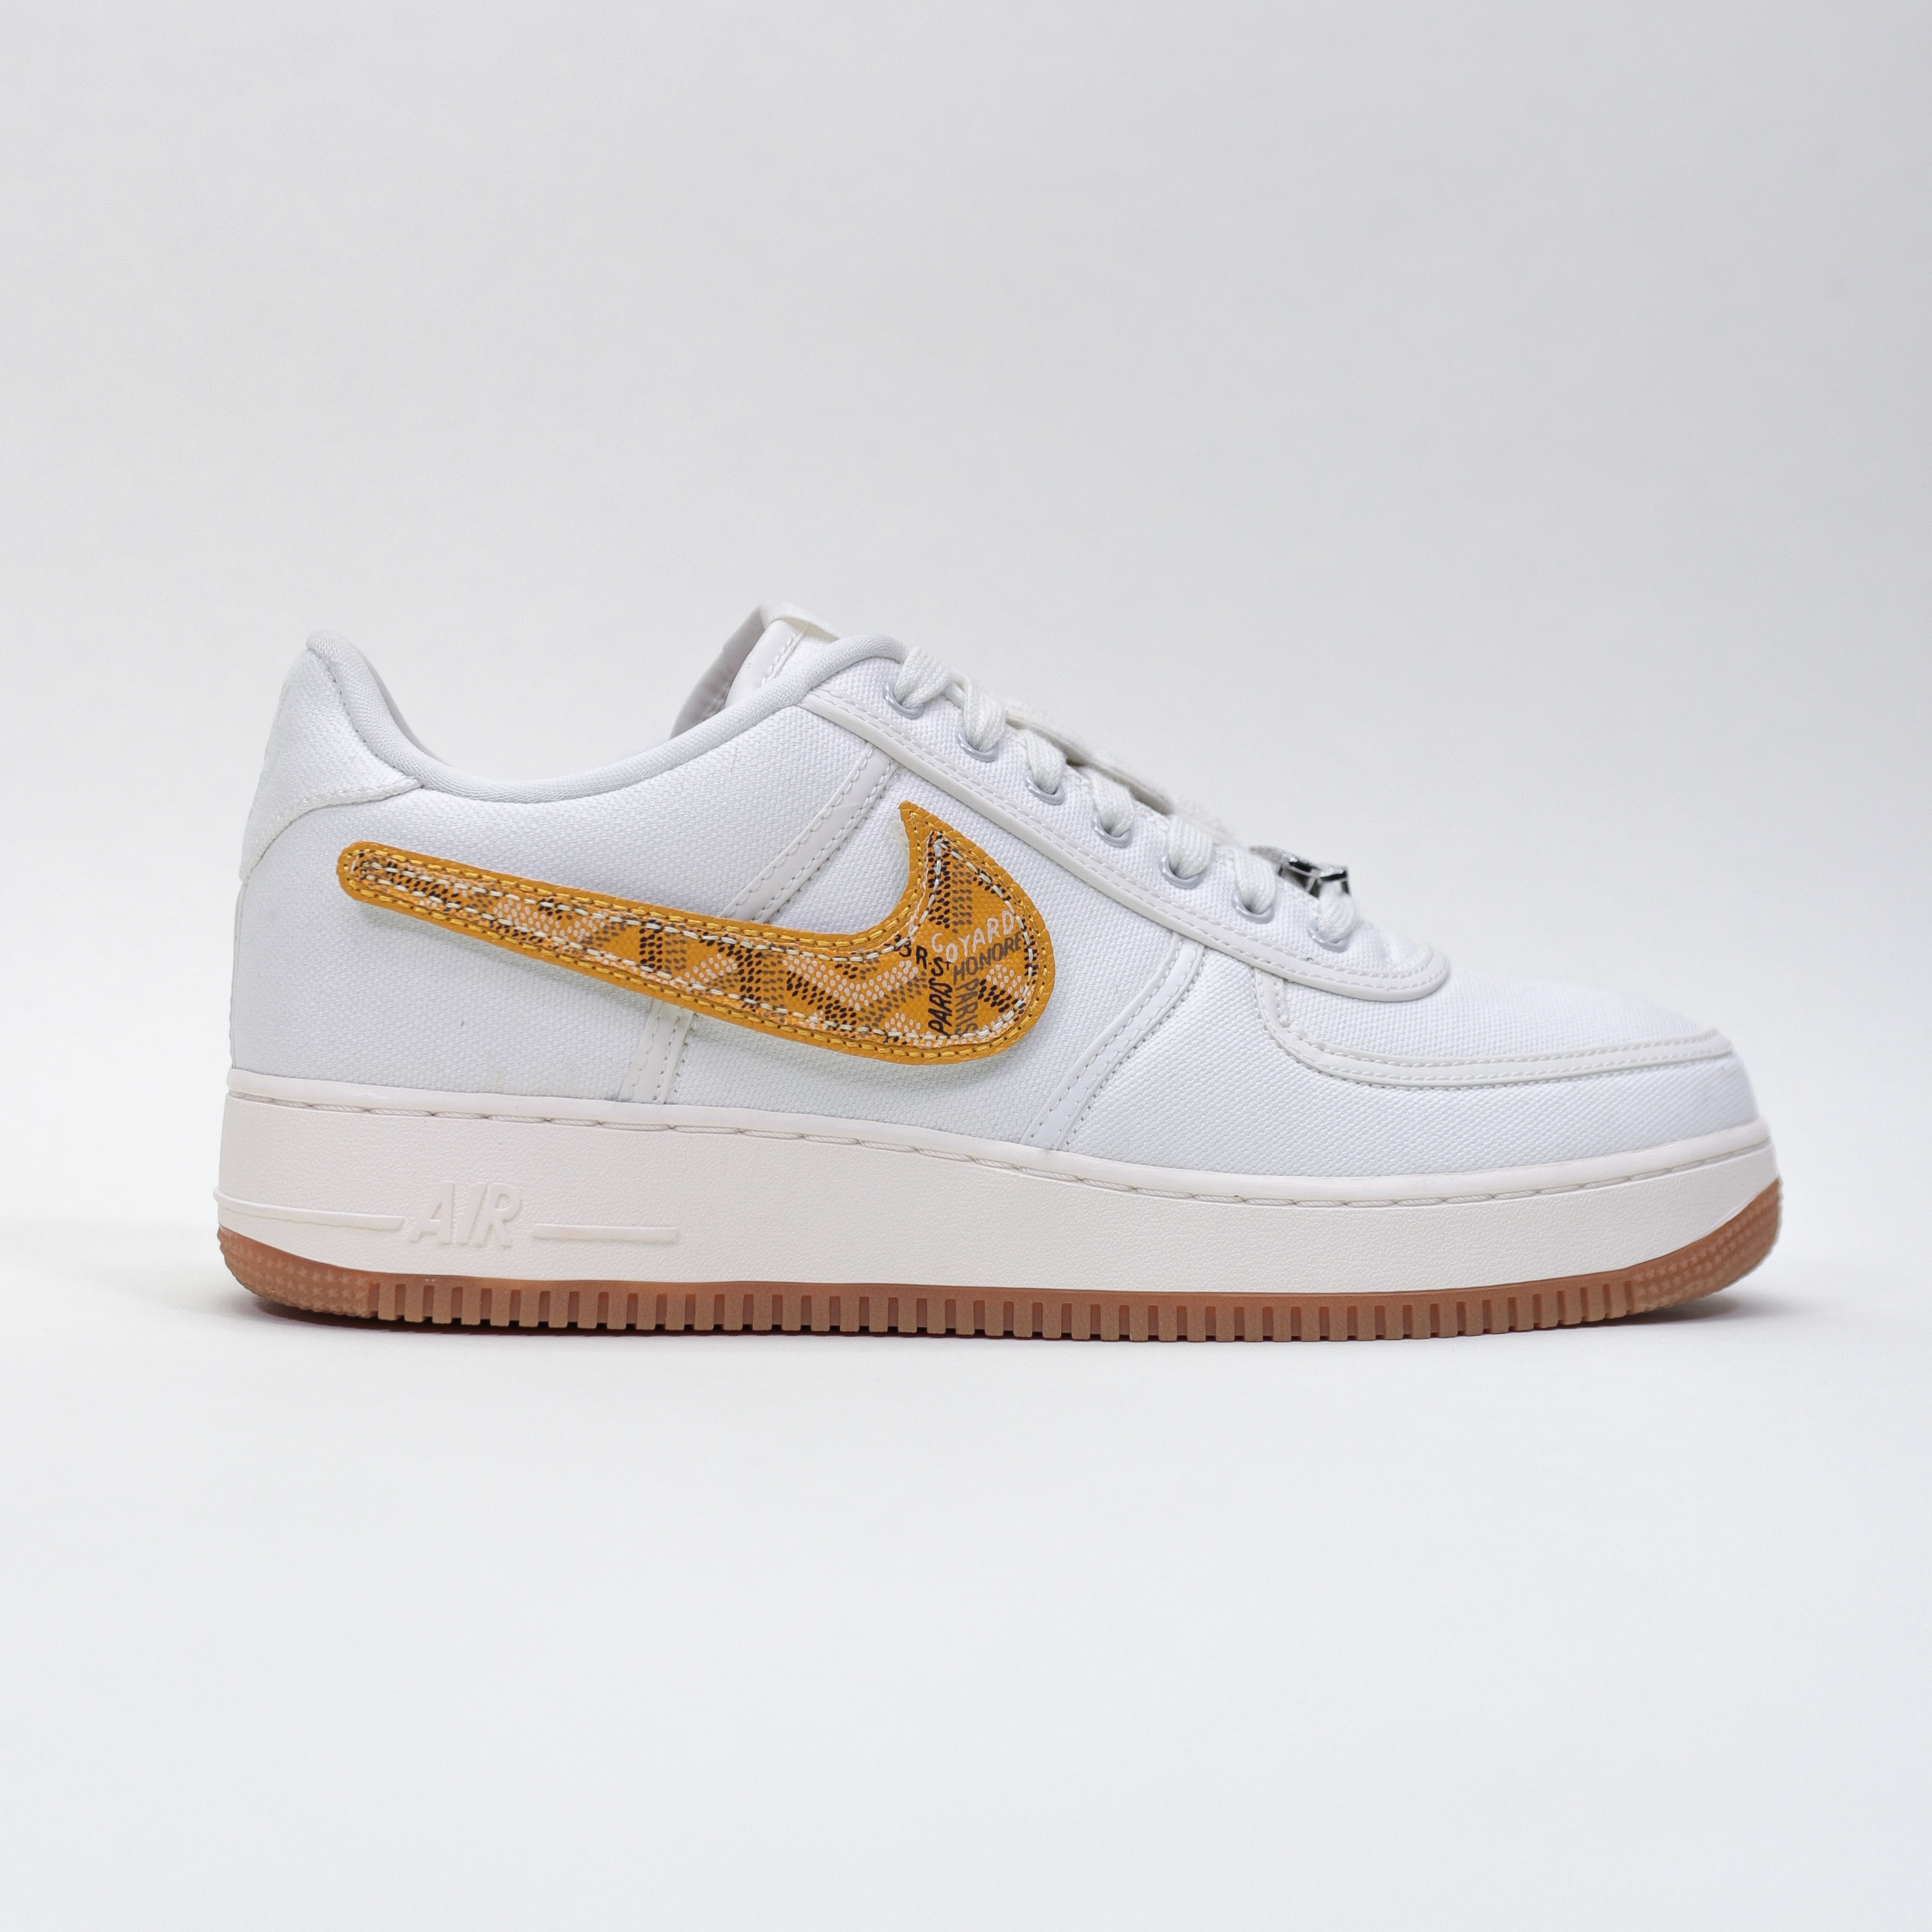 Yellow GOYARD TRAVIS SCOTT AF1 Velcro Swoosh